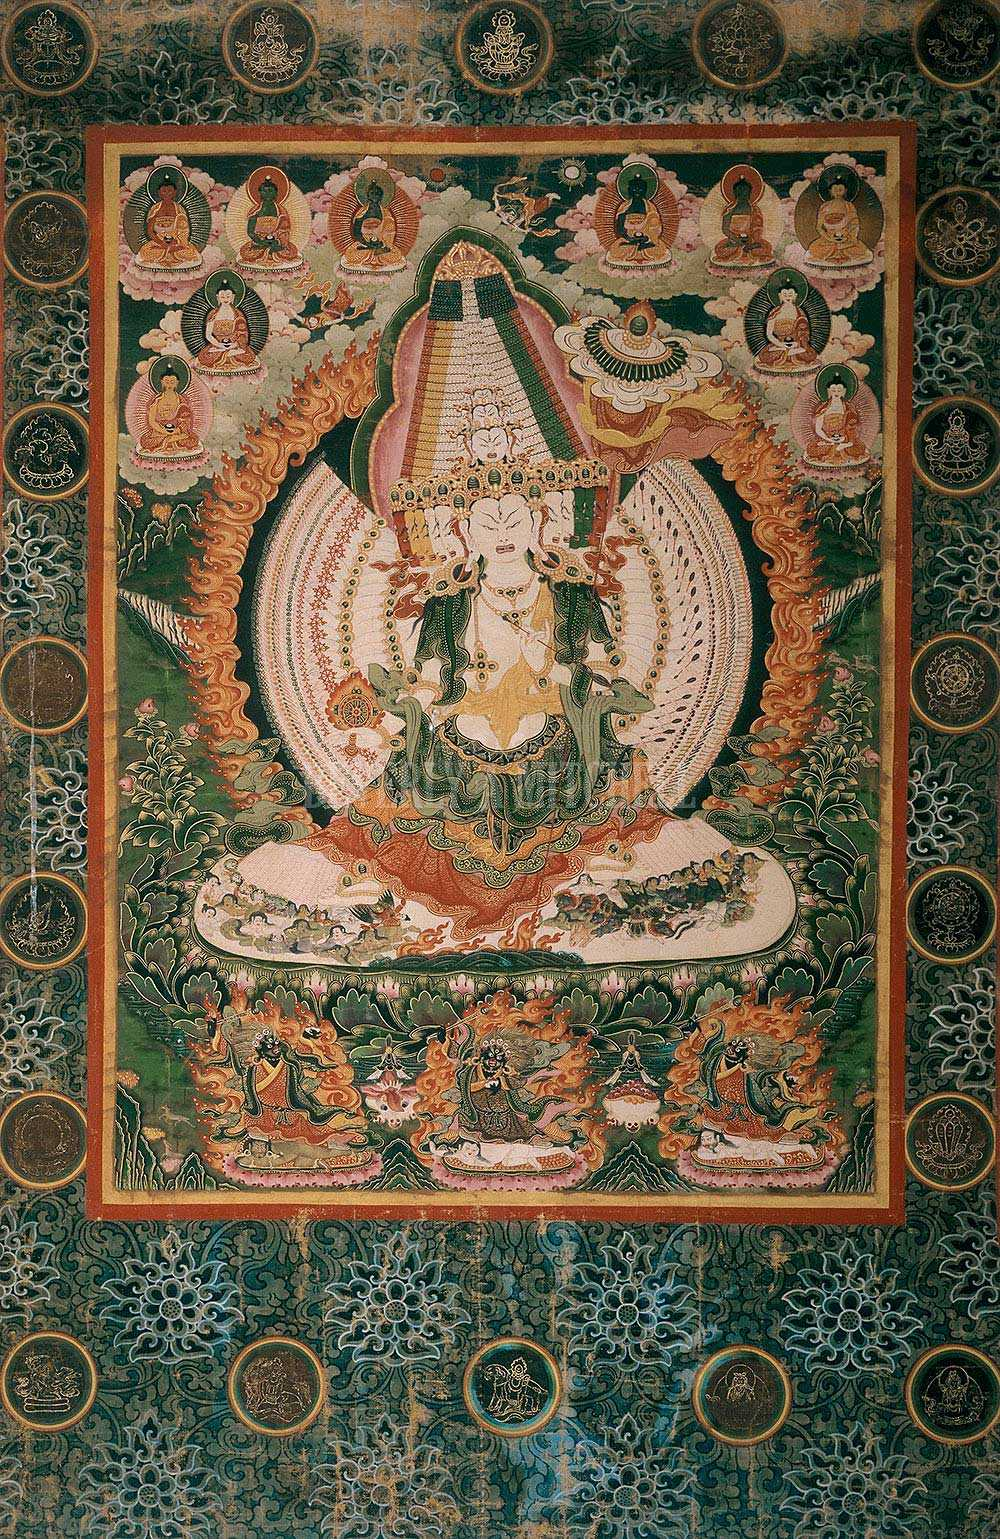 Parasol - The parasol is a symbol for protection from harmful forces and a place to take refuge the way followers take refuge in the dharma.